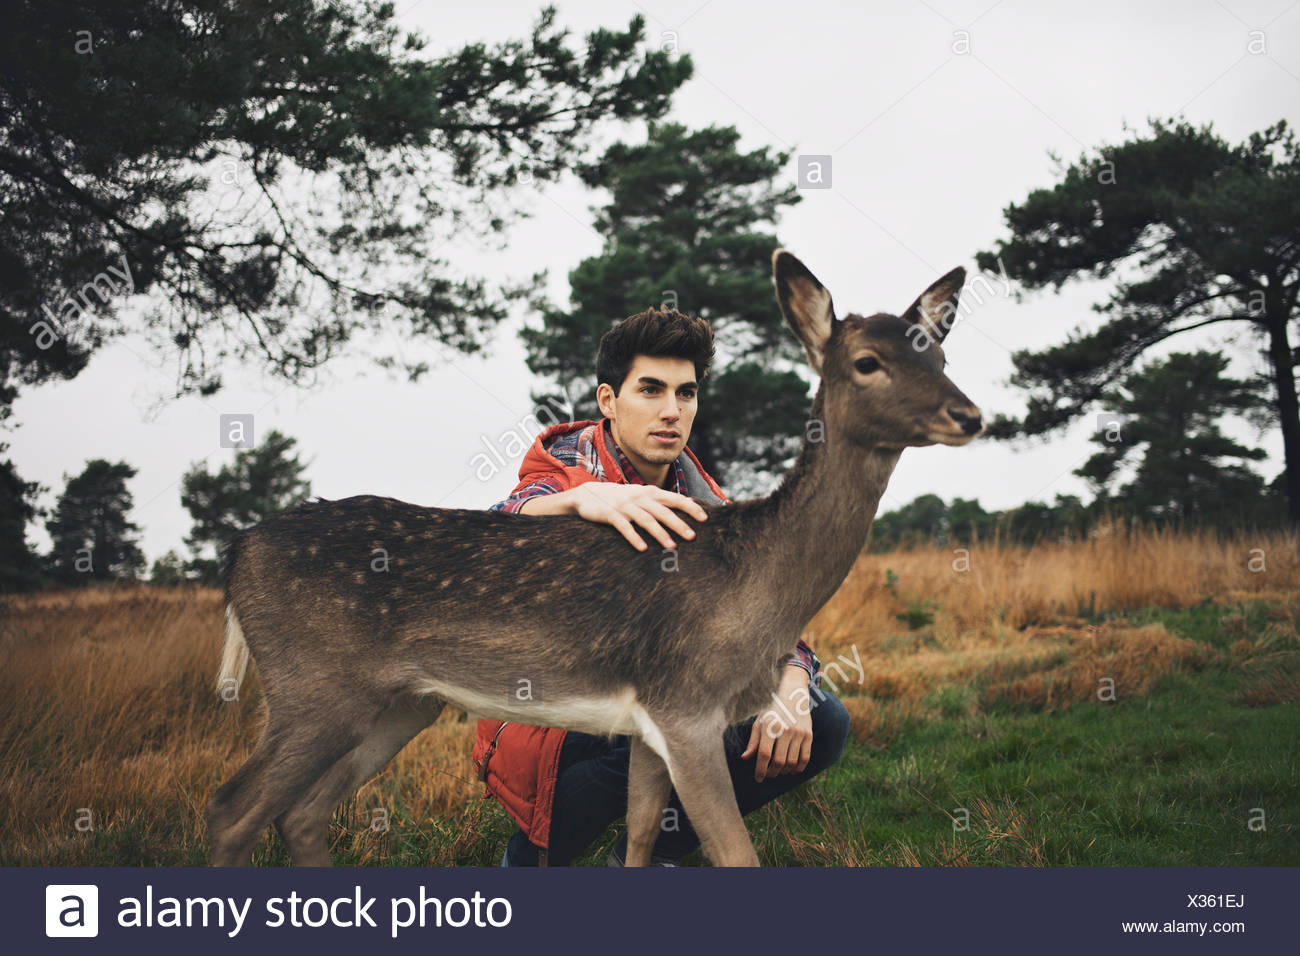 Young man crouching in field petting a deer Stock Photo